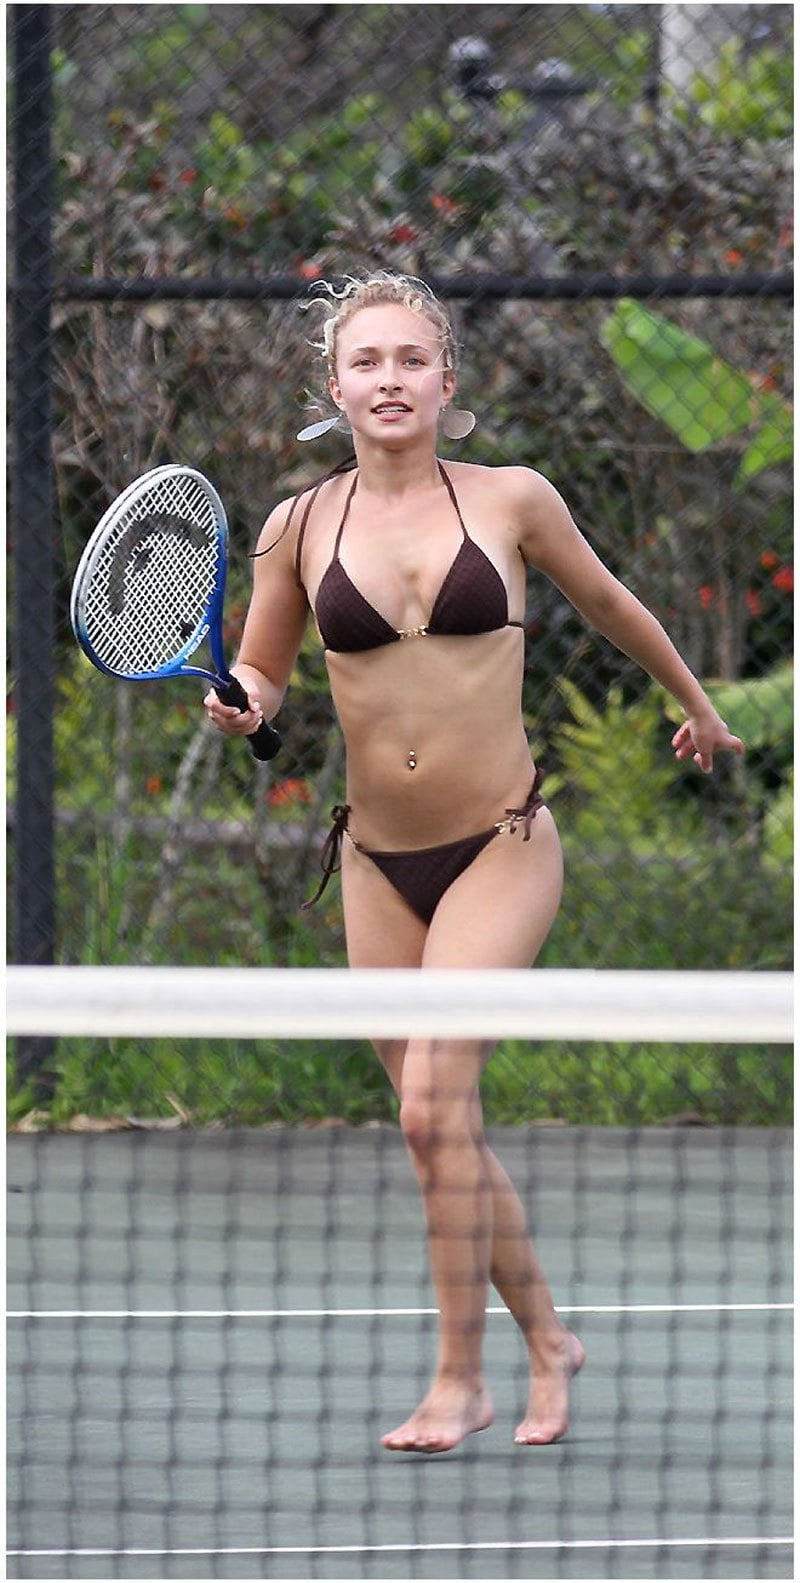 Hayden Panettiere awesome pics